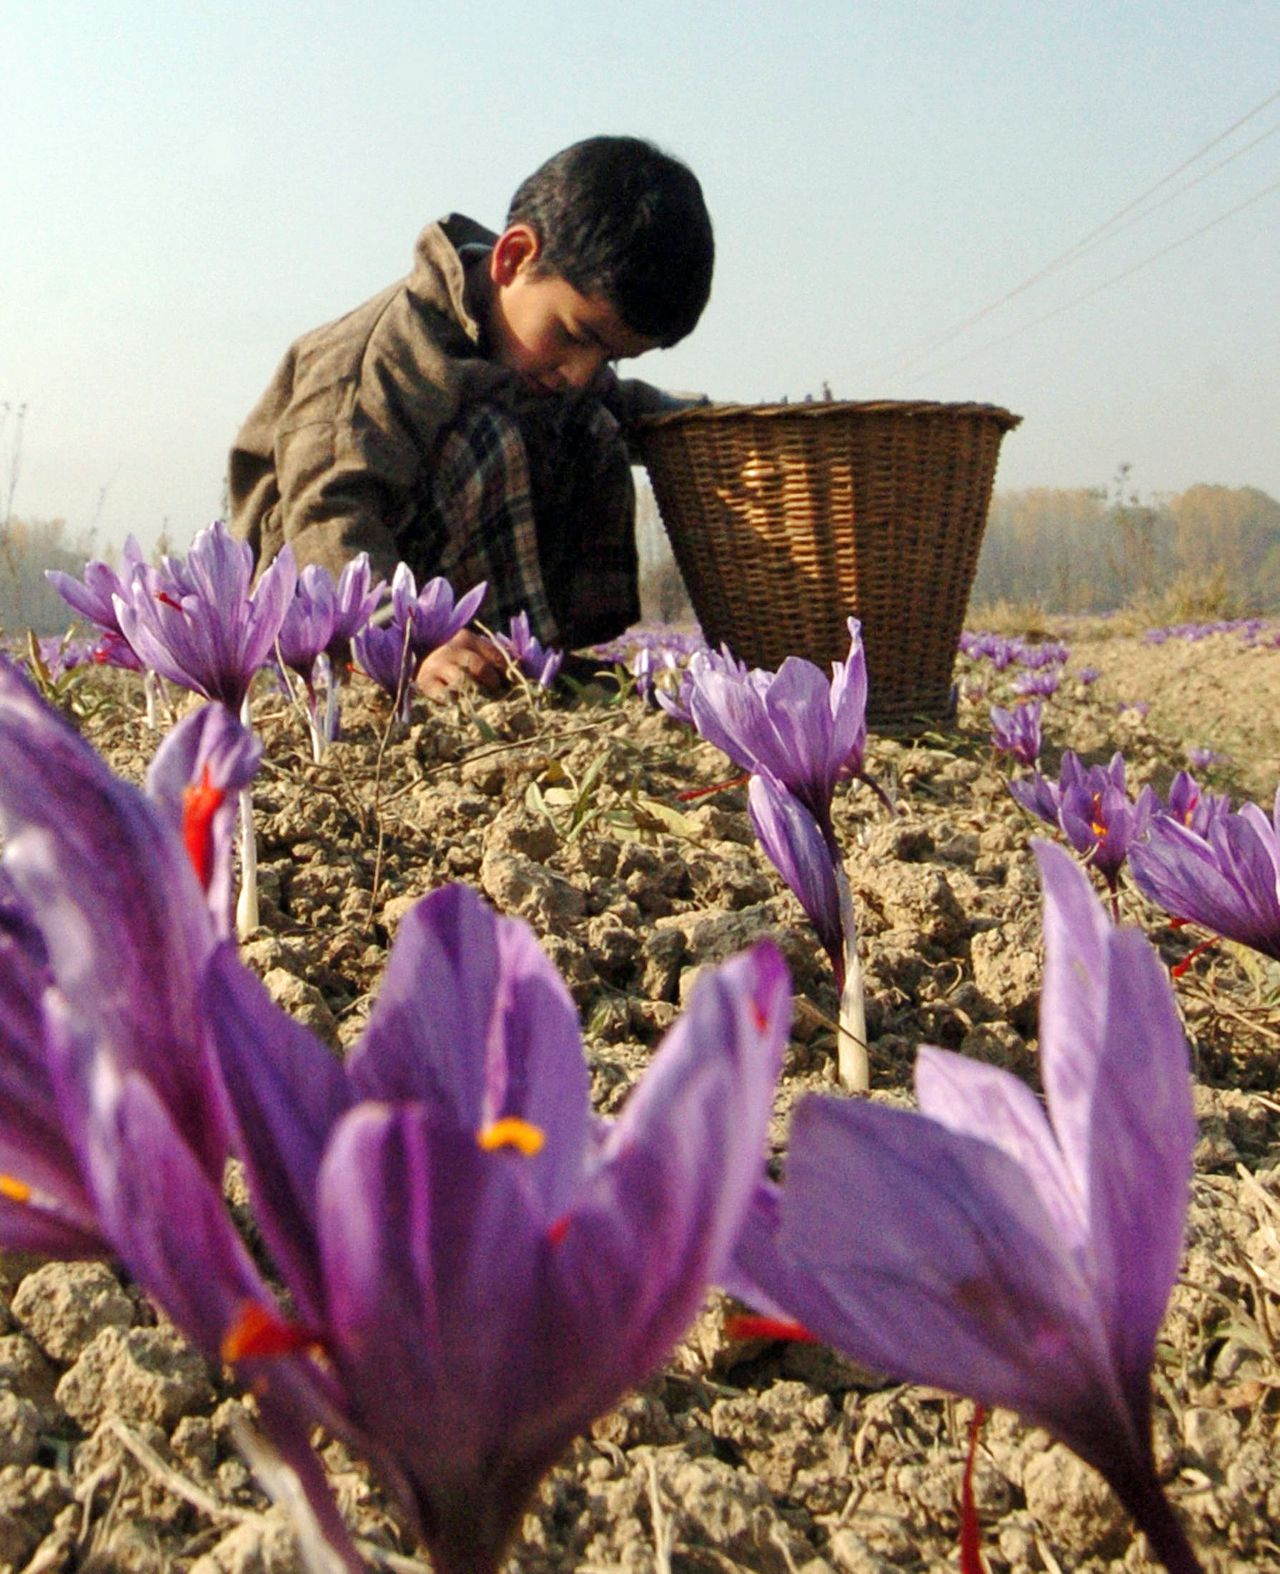 Een jongetje in Kashmir plukt de bloemen van de saffraankrokus. Foto AFP An Indian Kashmiri child collects saffron from a field at Pampore on the outskirts of Srinagar, 31 October 2007, as the season of cultivation of the prized crop began in the valley. Many historians believe that it was in this region that the cultivation of the purple Crocus Sativus saffron flower first began, although it is impossible to be sure where its origins lie.